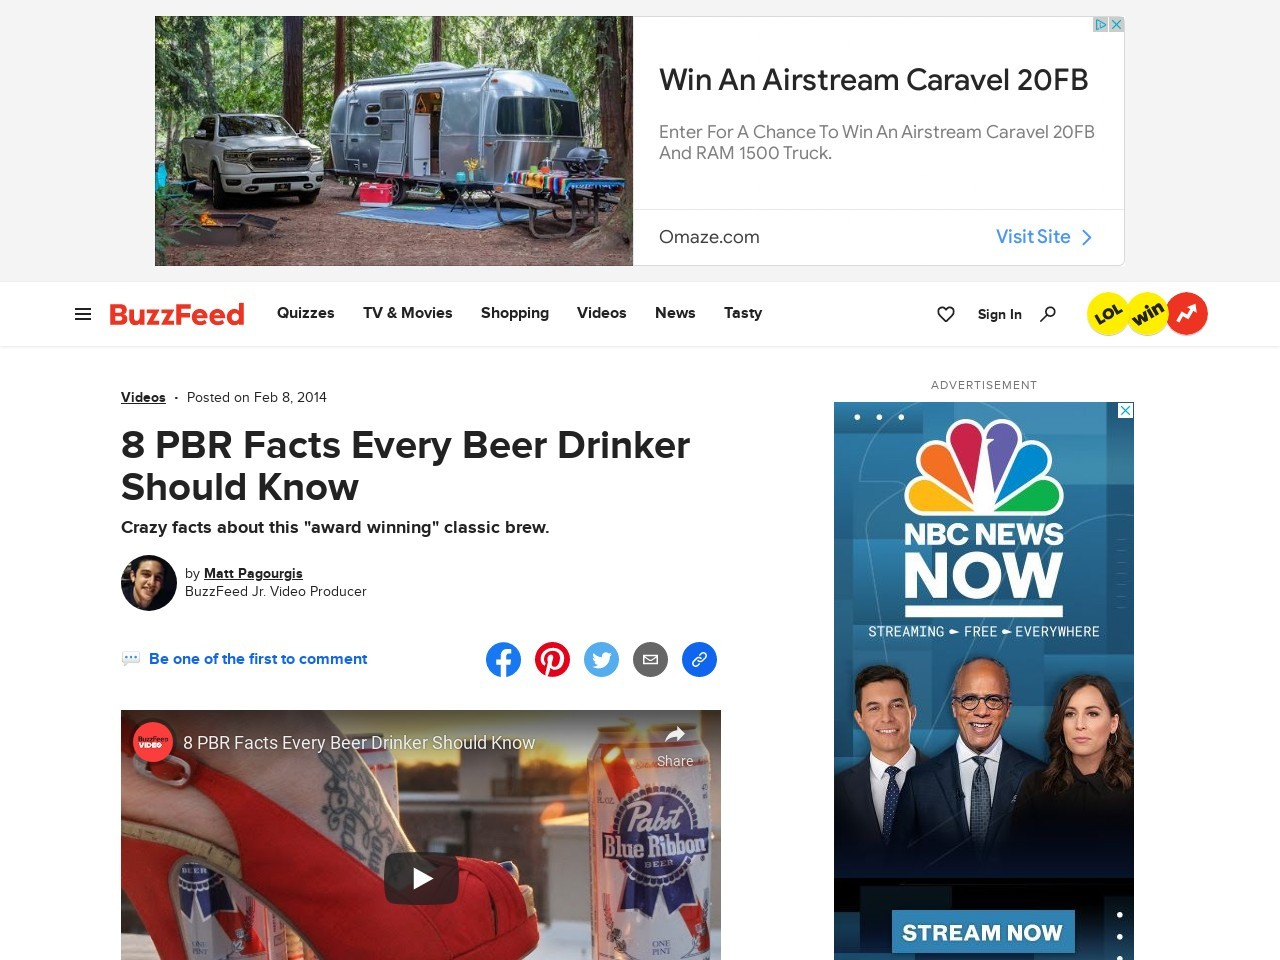 8 PBR Facts Every Beer Drinker Should Know